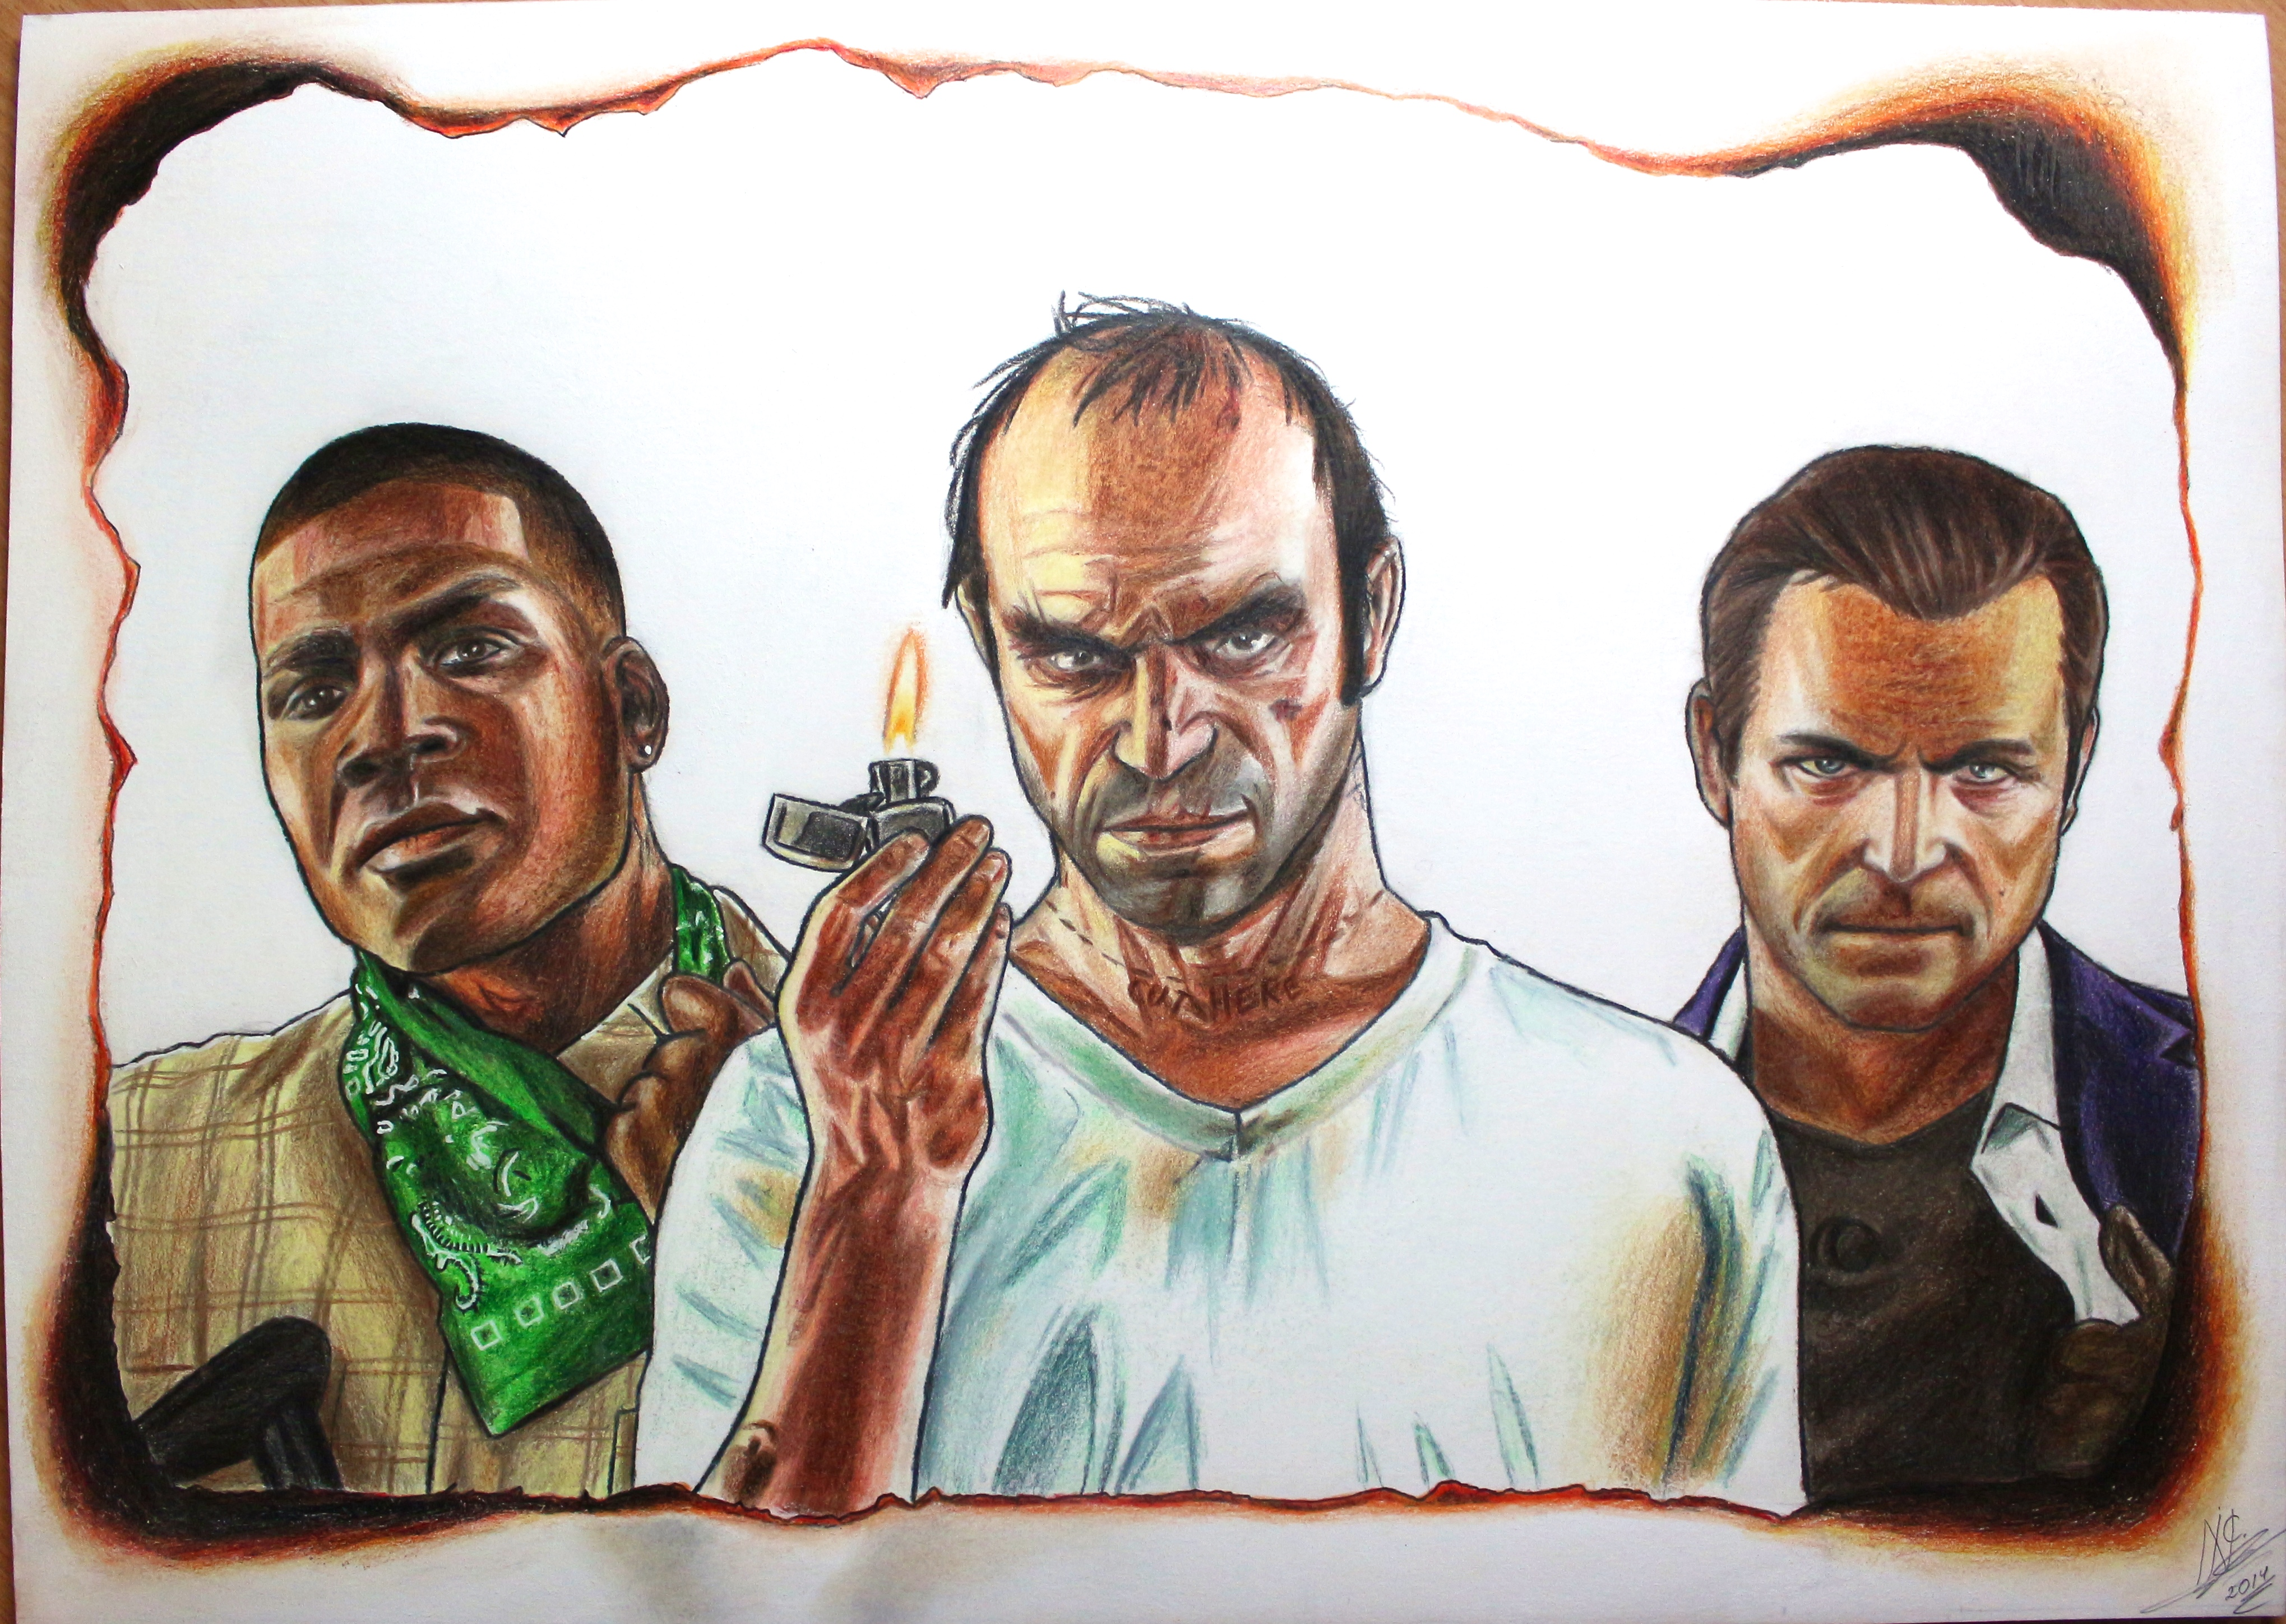 Gta 5 Cartoon Characters : Rockstar on game fanart deviantart